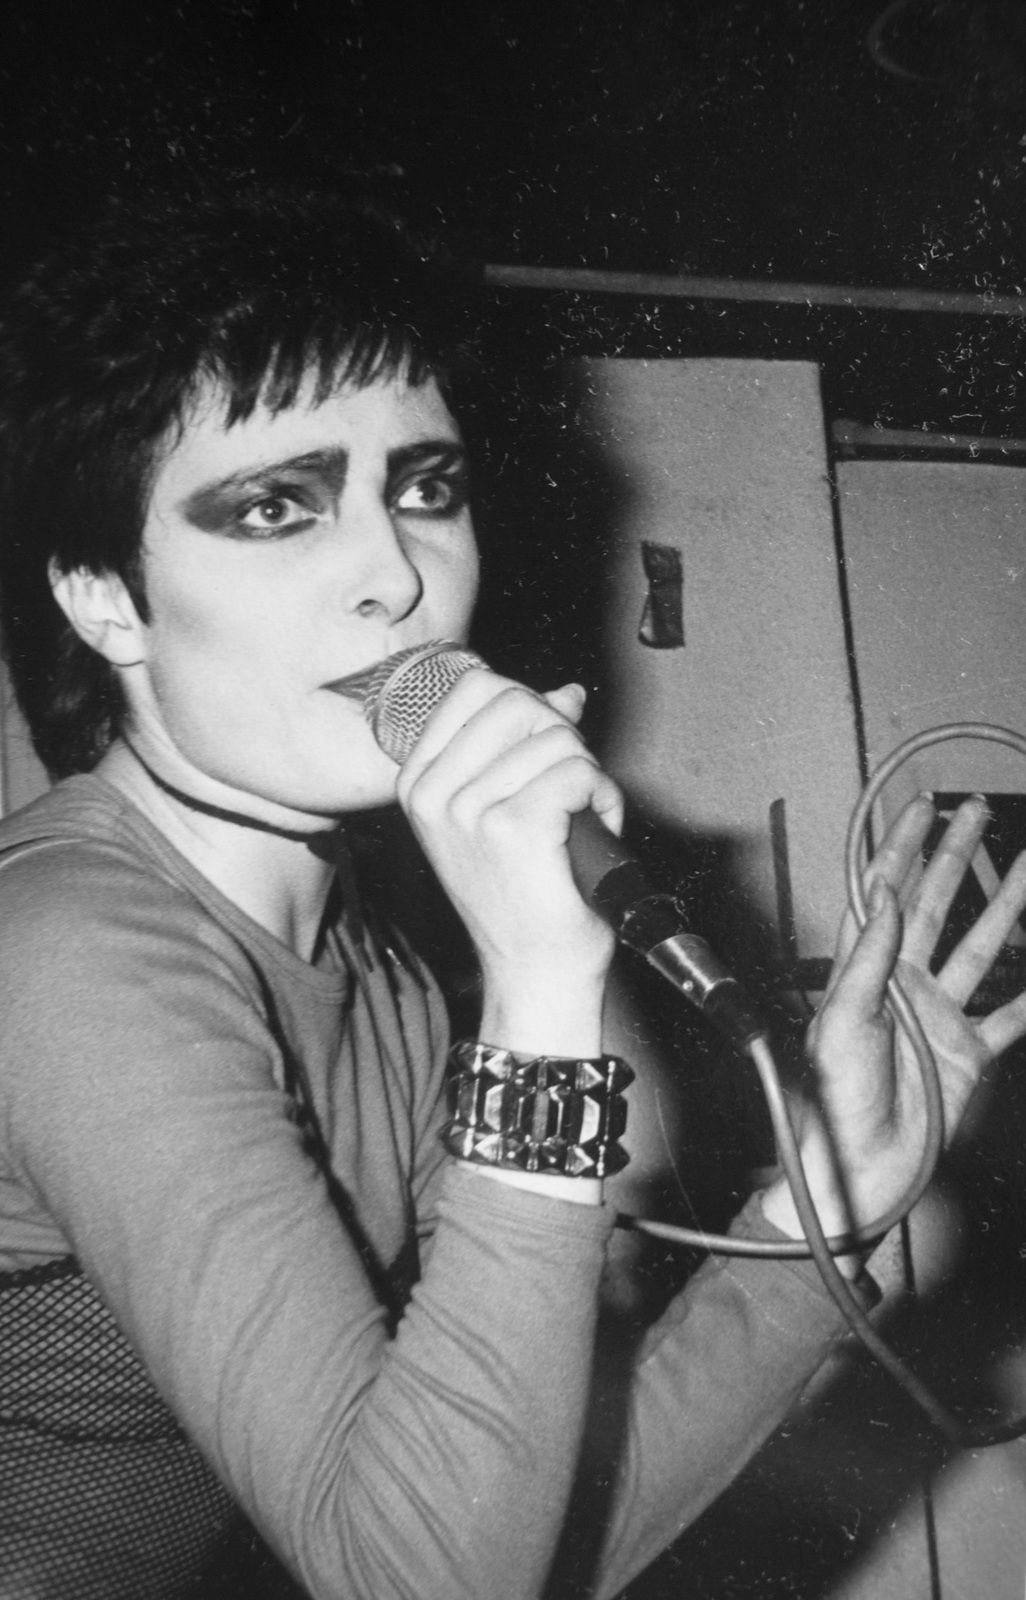 Siouxsie & The Banshees at The Vortex Club, London, October 31, 1977 by Jeremy Gibbs